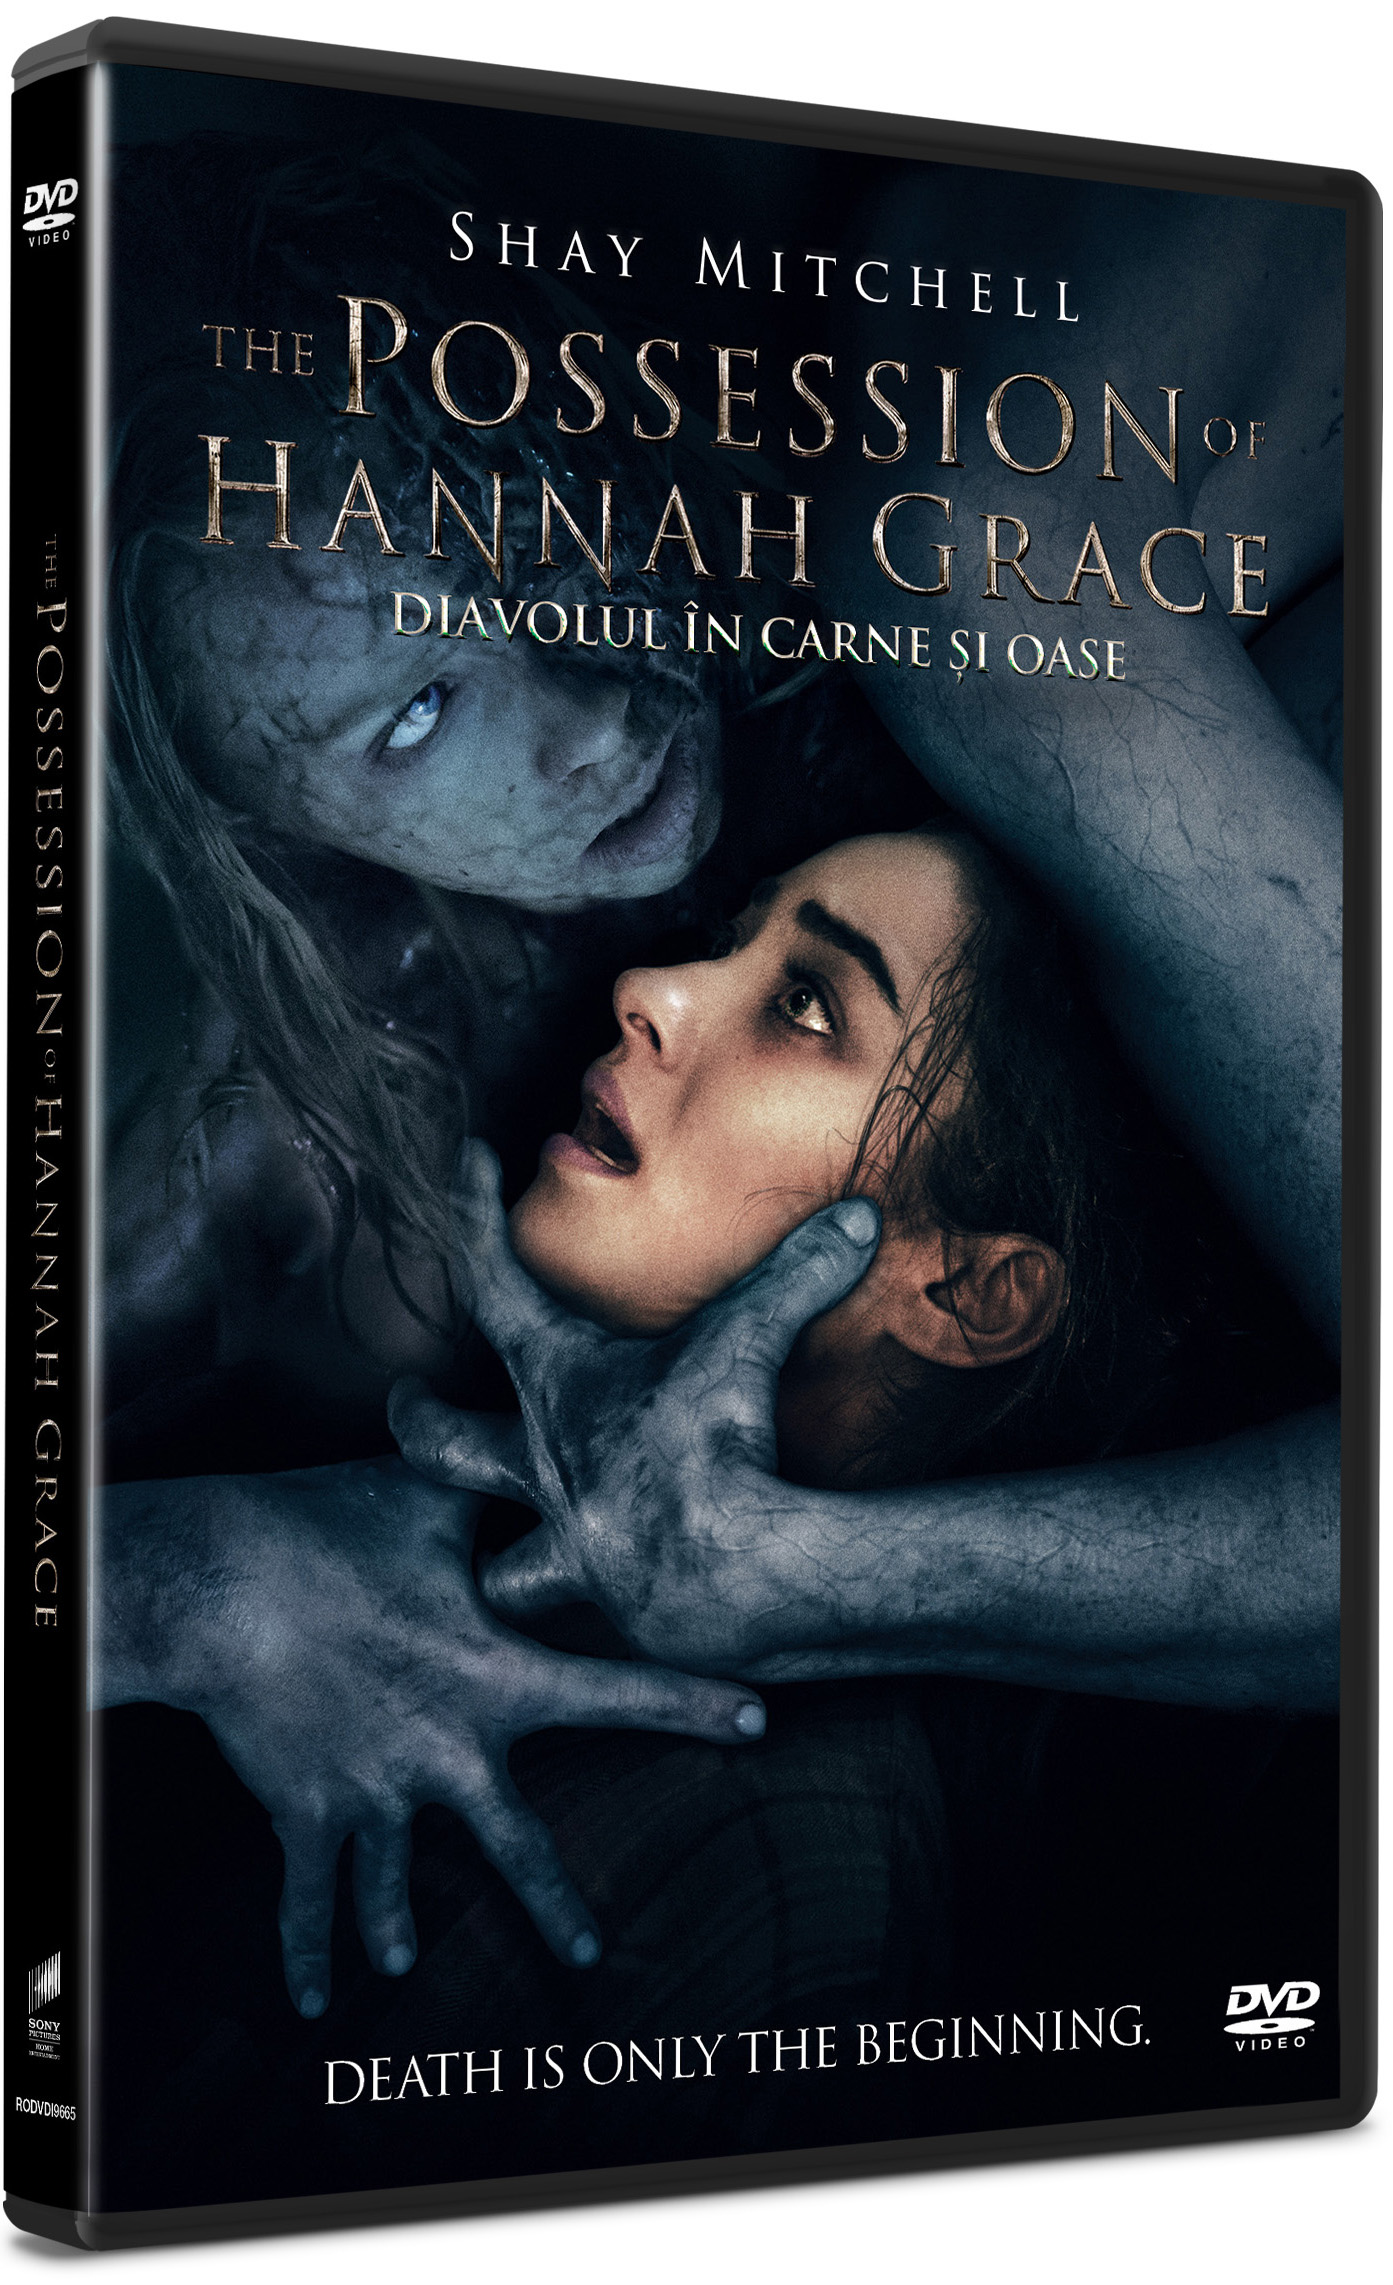 Diavolul in carne si oase / The Possession of Hannah Grace thumbnail